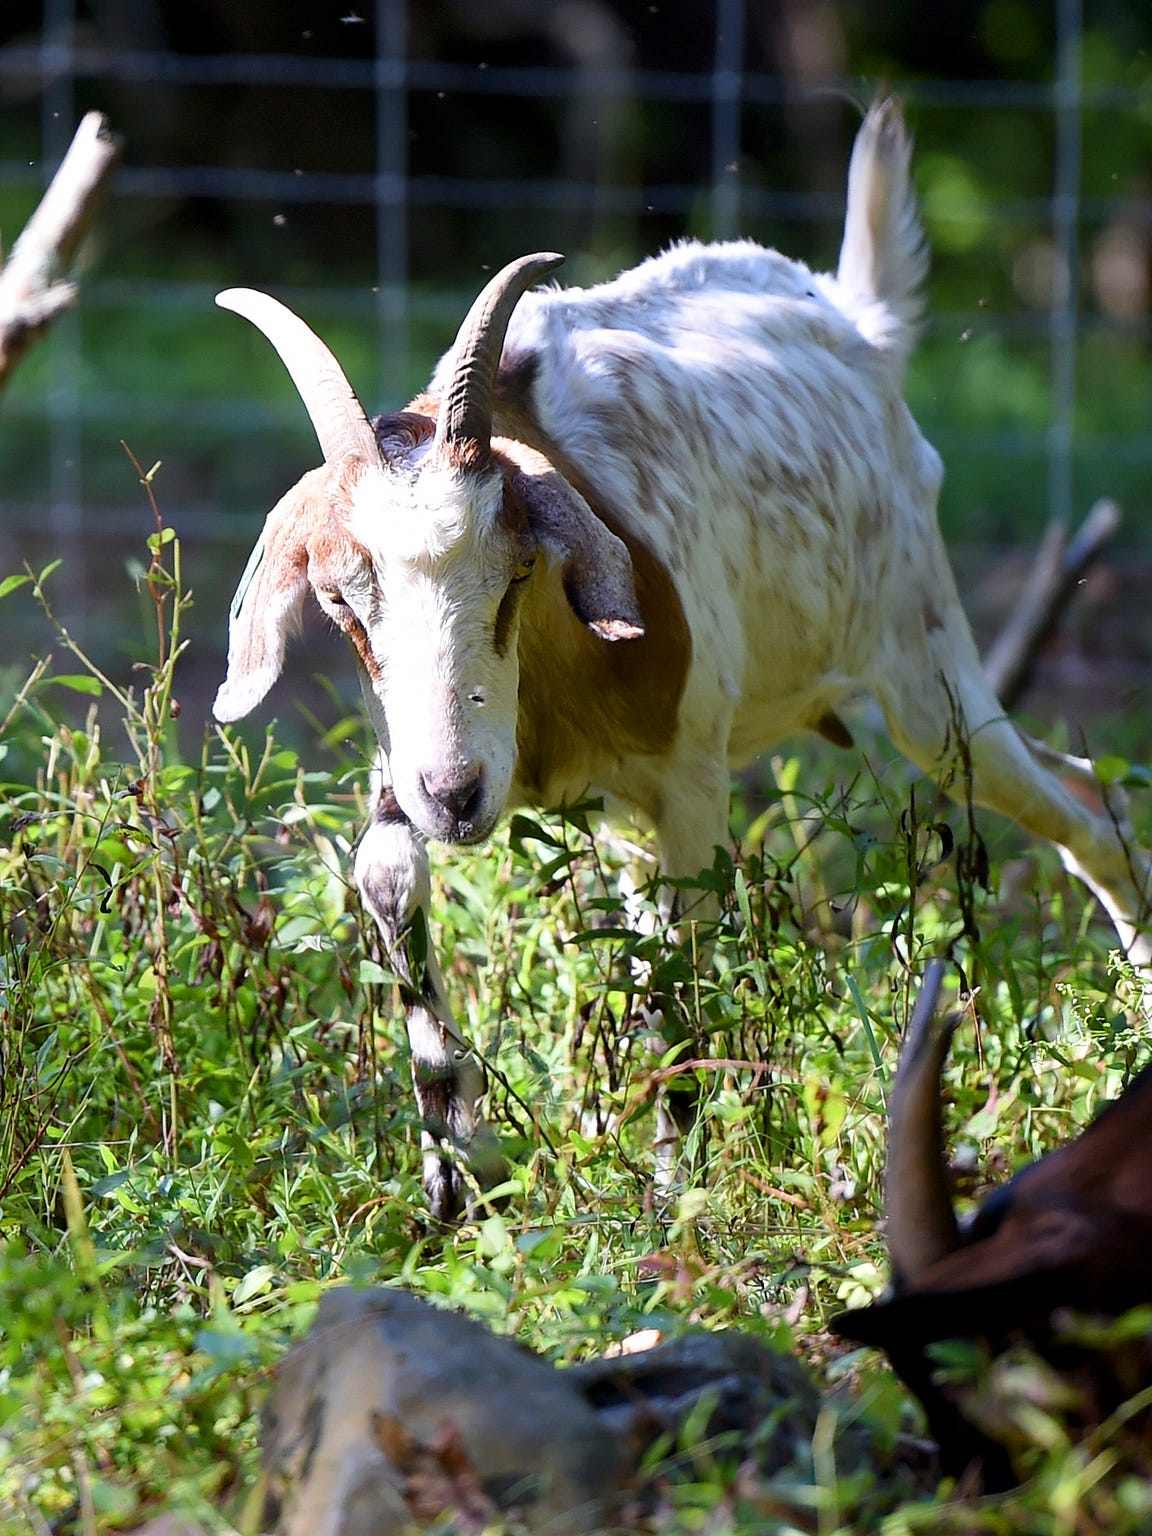 A goat from Goat Busters moves around, feasting on overgrown vegetation in a fenced off section of land on property near Churchville on Sept. 11, 2015.